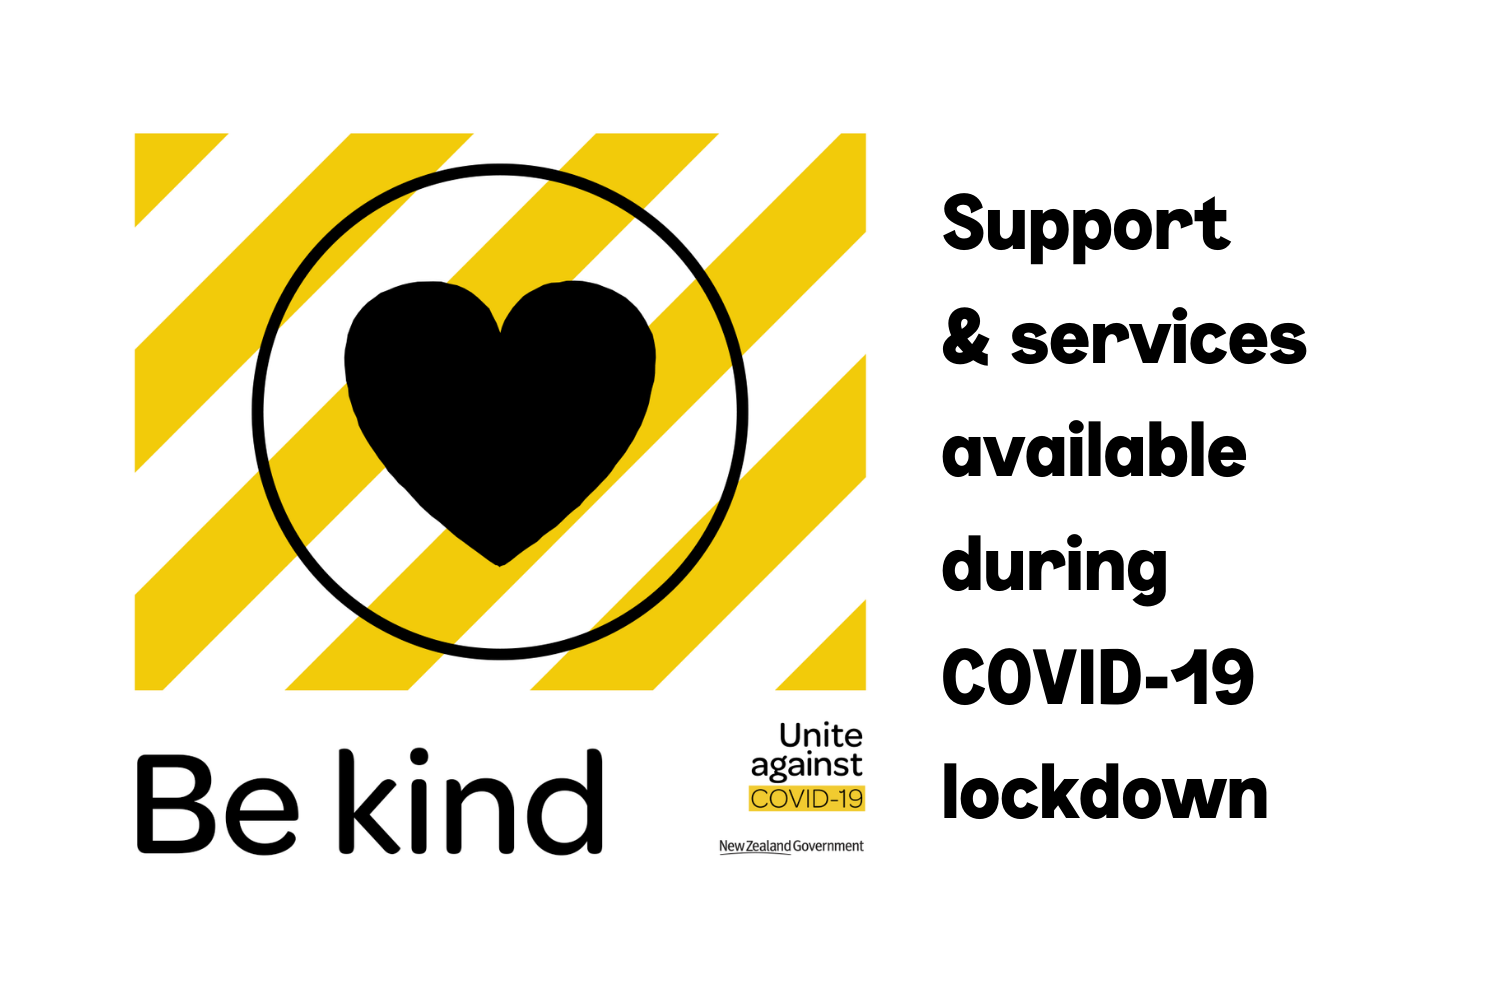 """Image with """"Be kind"""" logo and text, Support & services available during COVID-19 lockdown"""